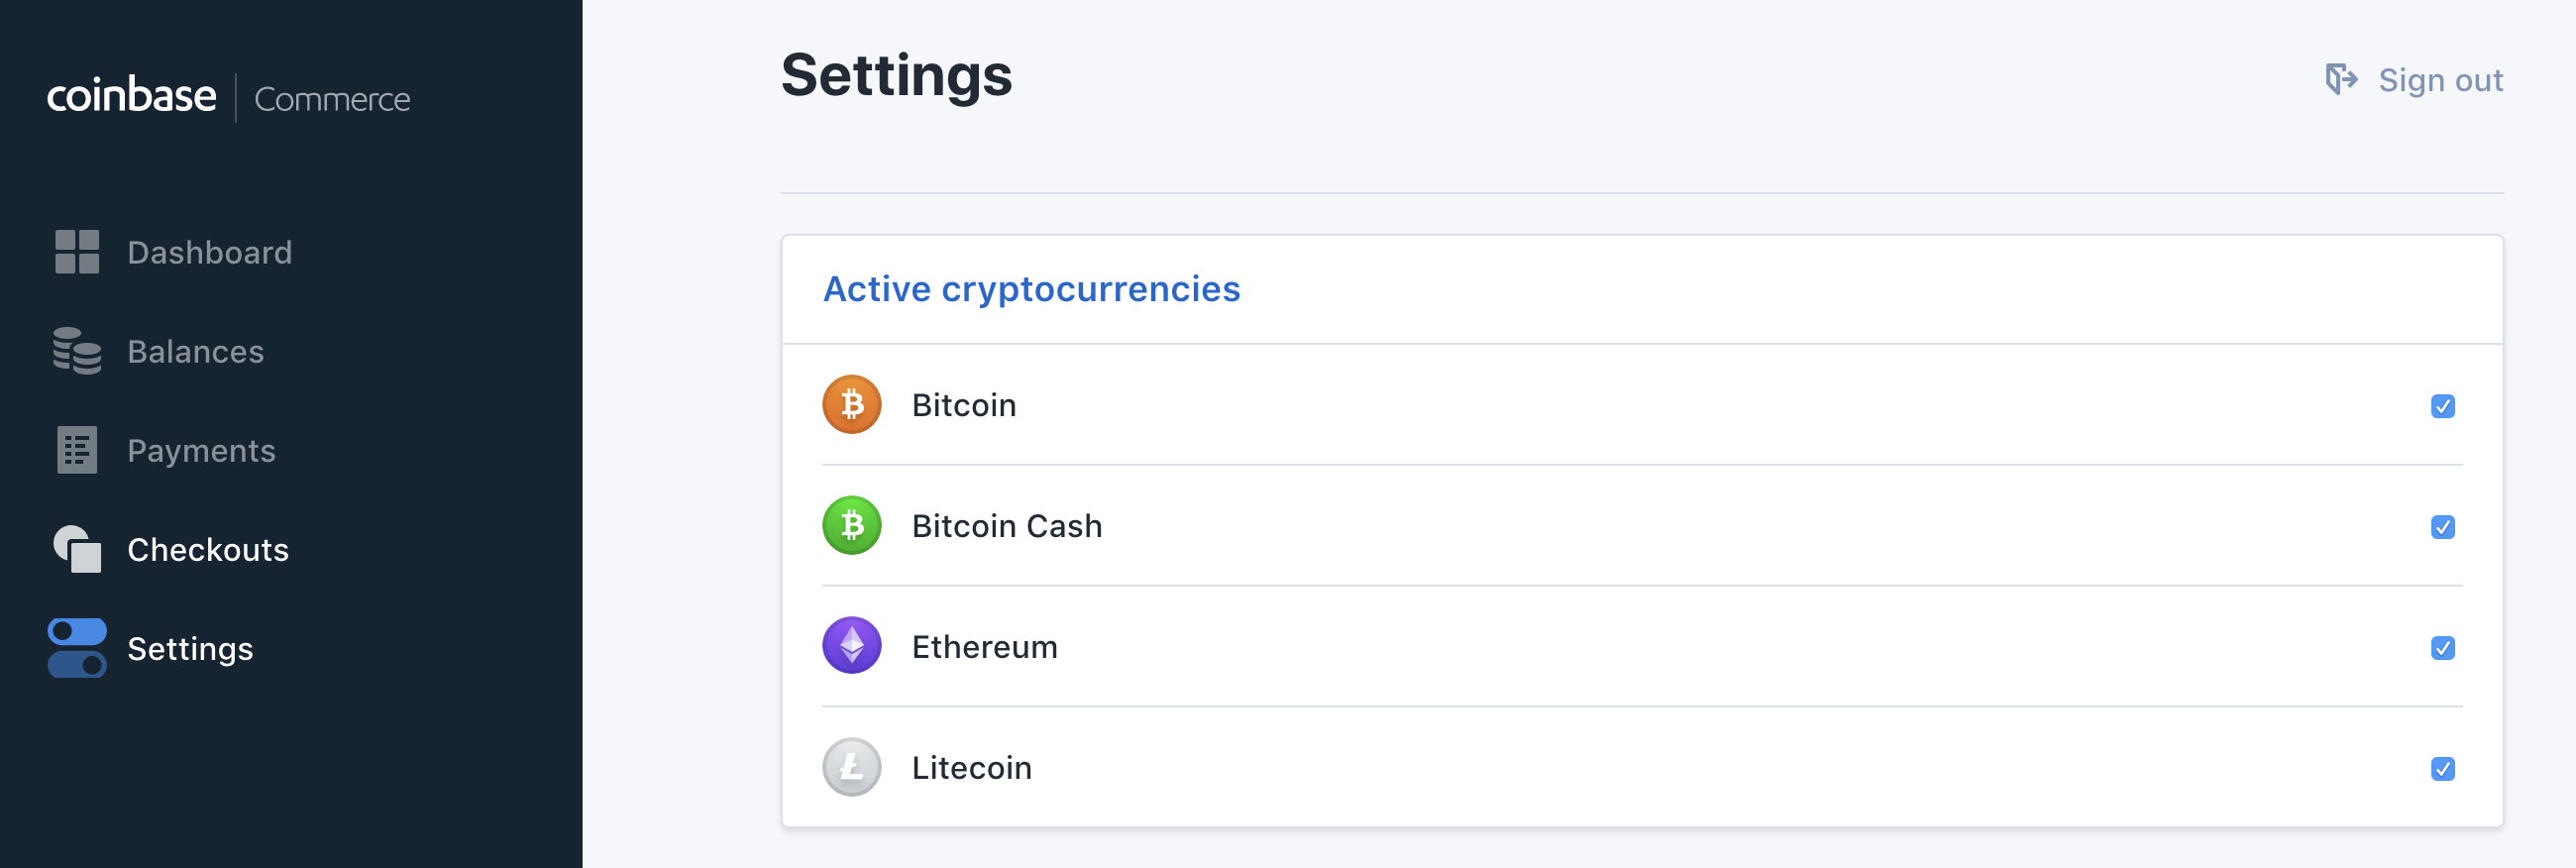 Coinbase Commerce active cryptocurrencies